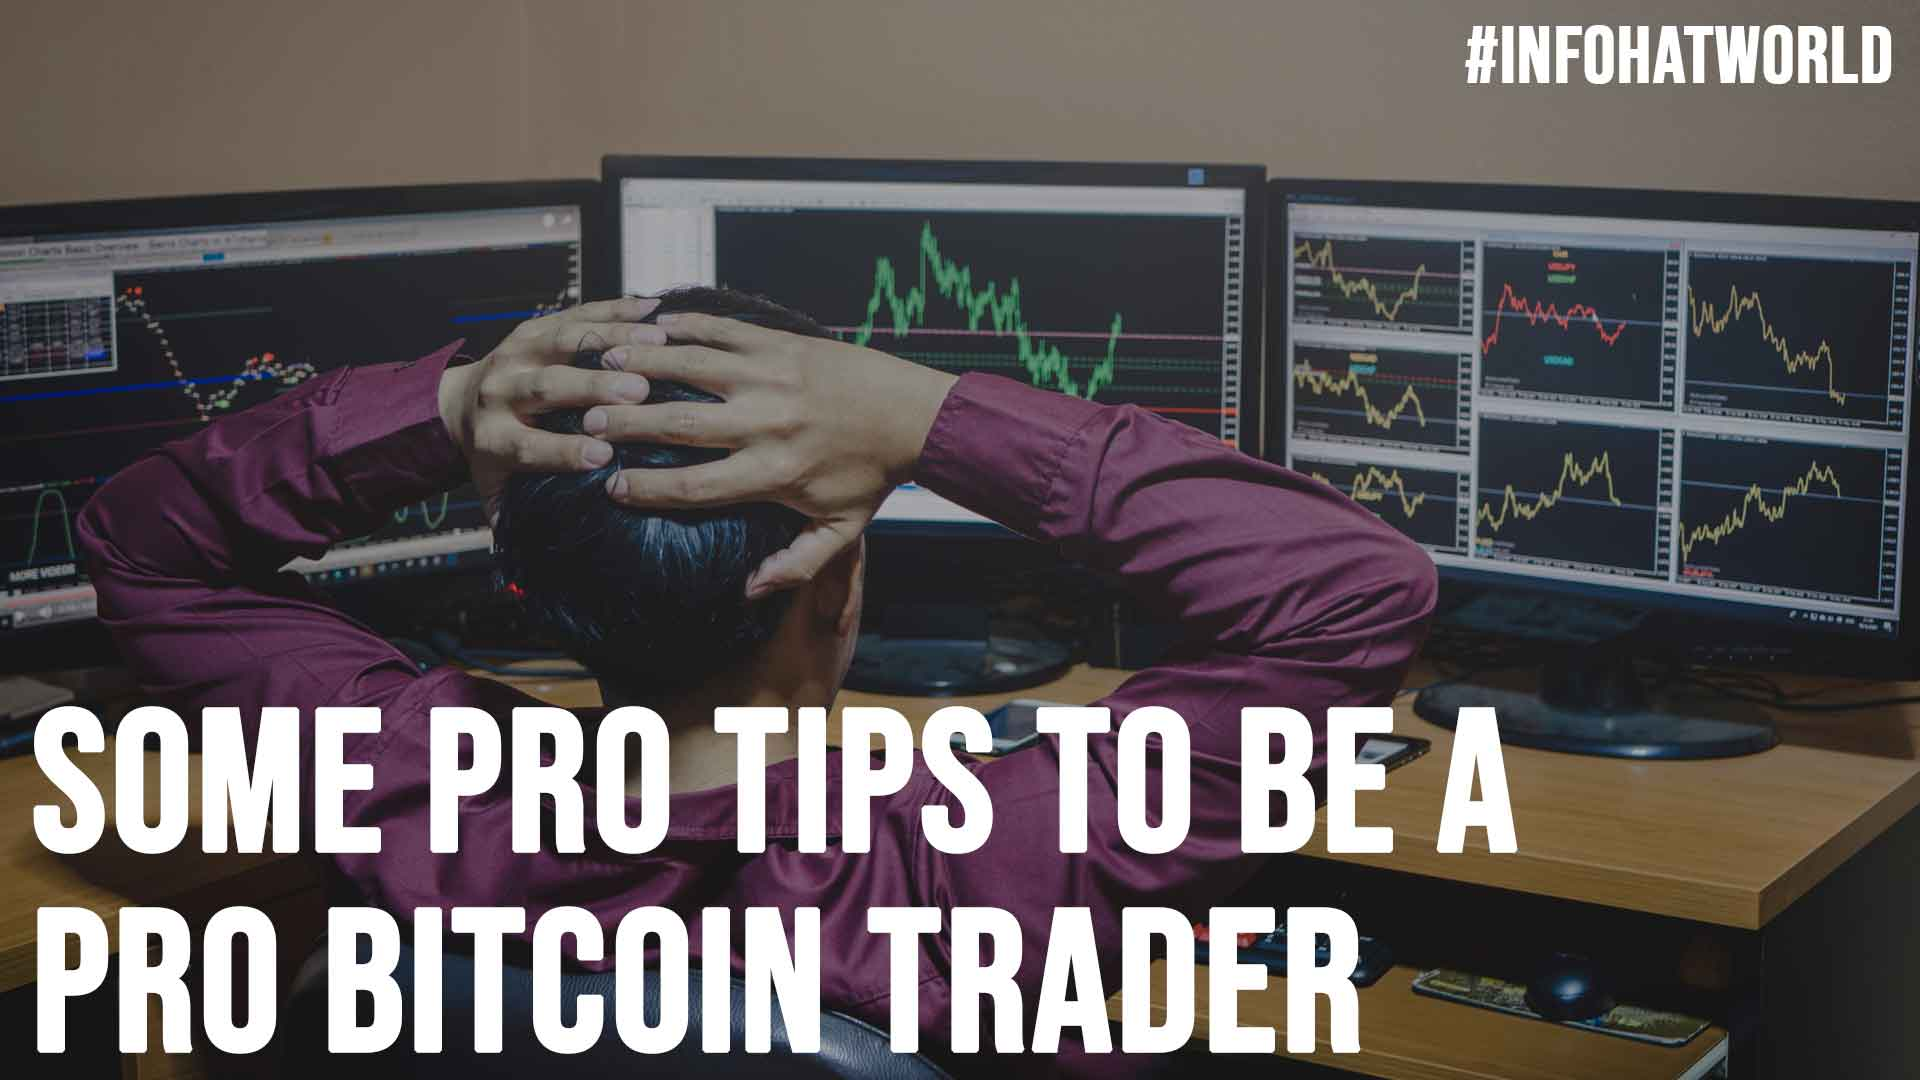 Some Pro Tips to Be a Pro Bitcoin Trader